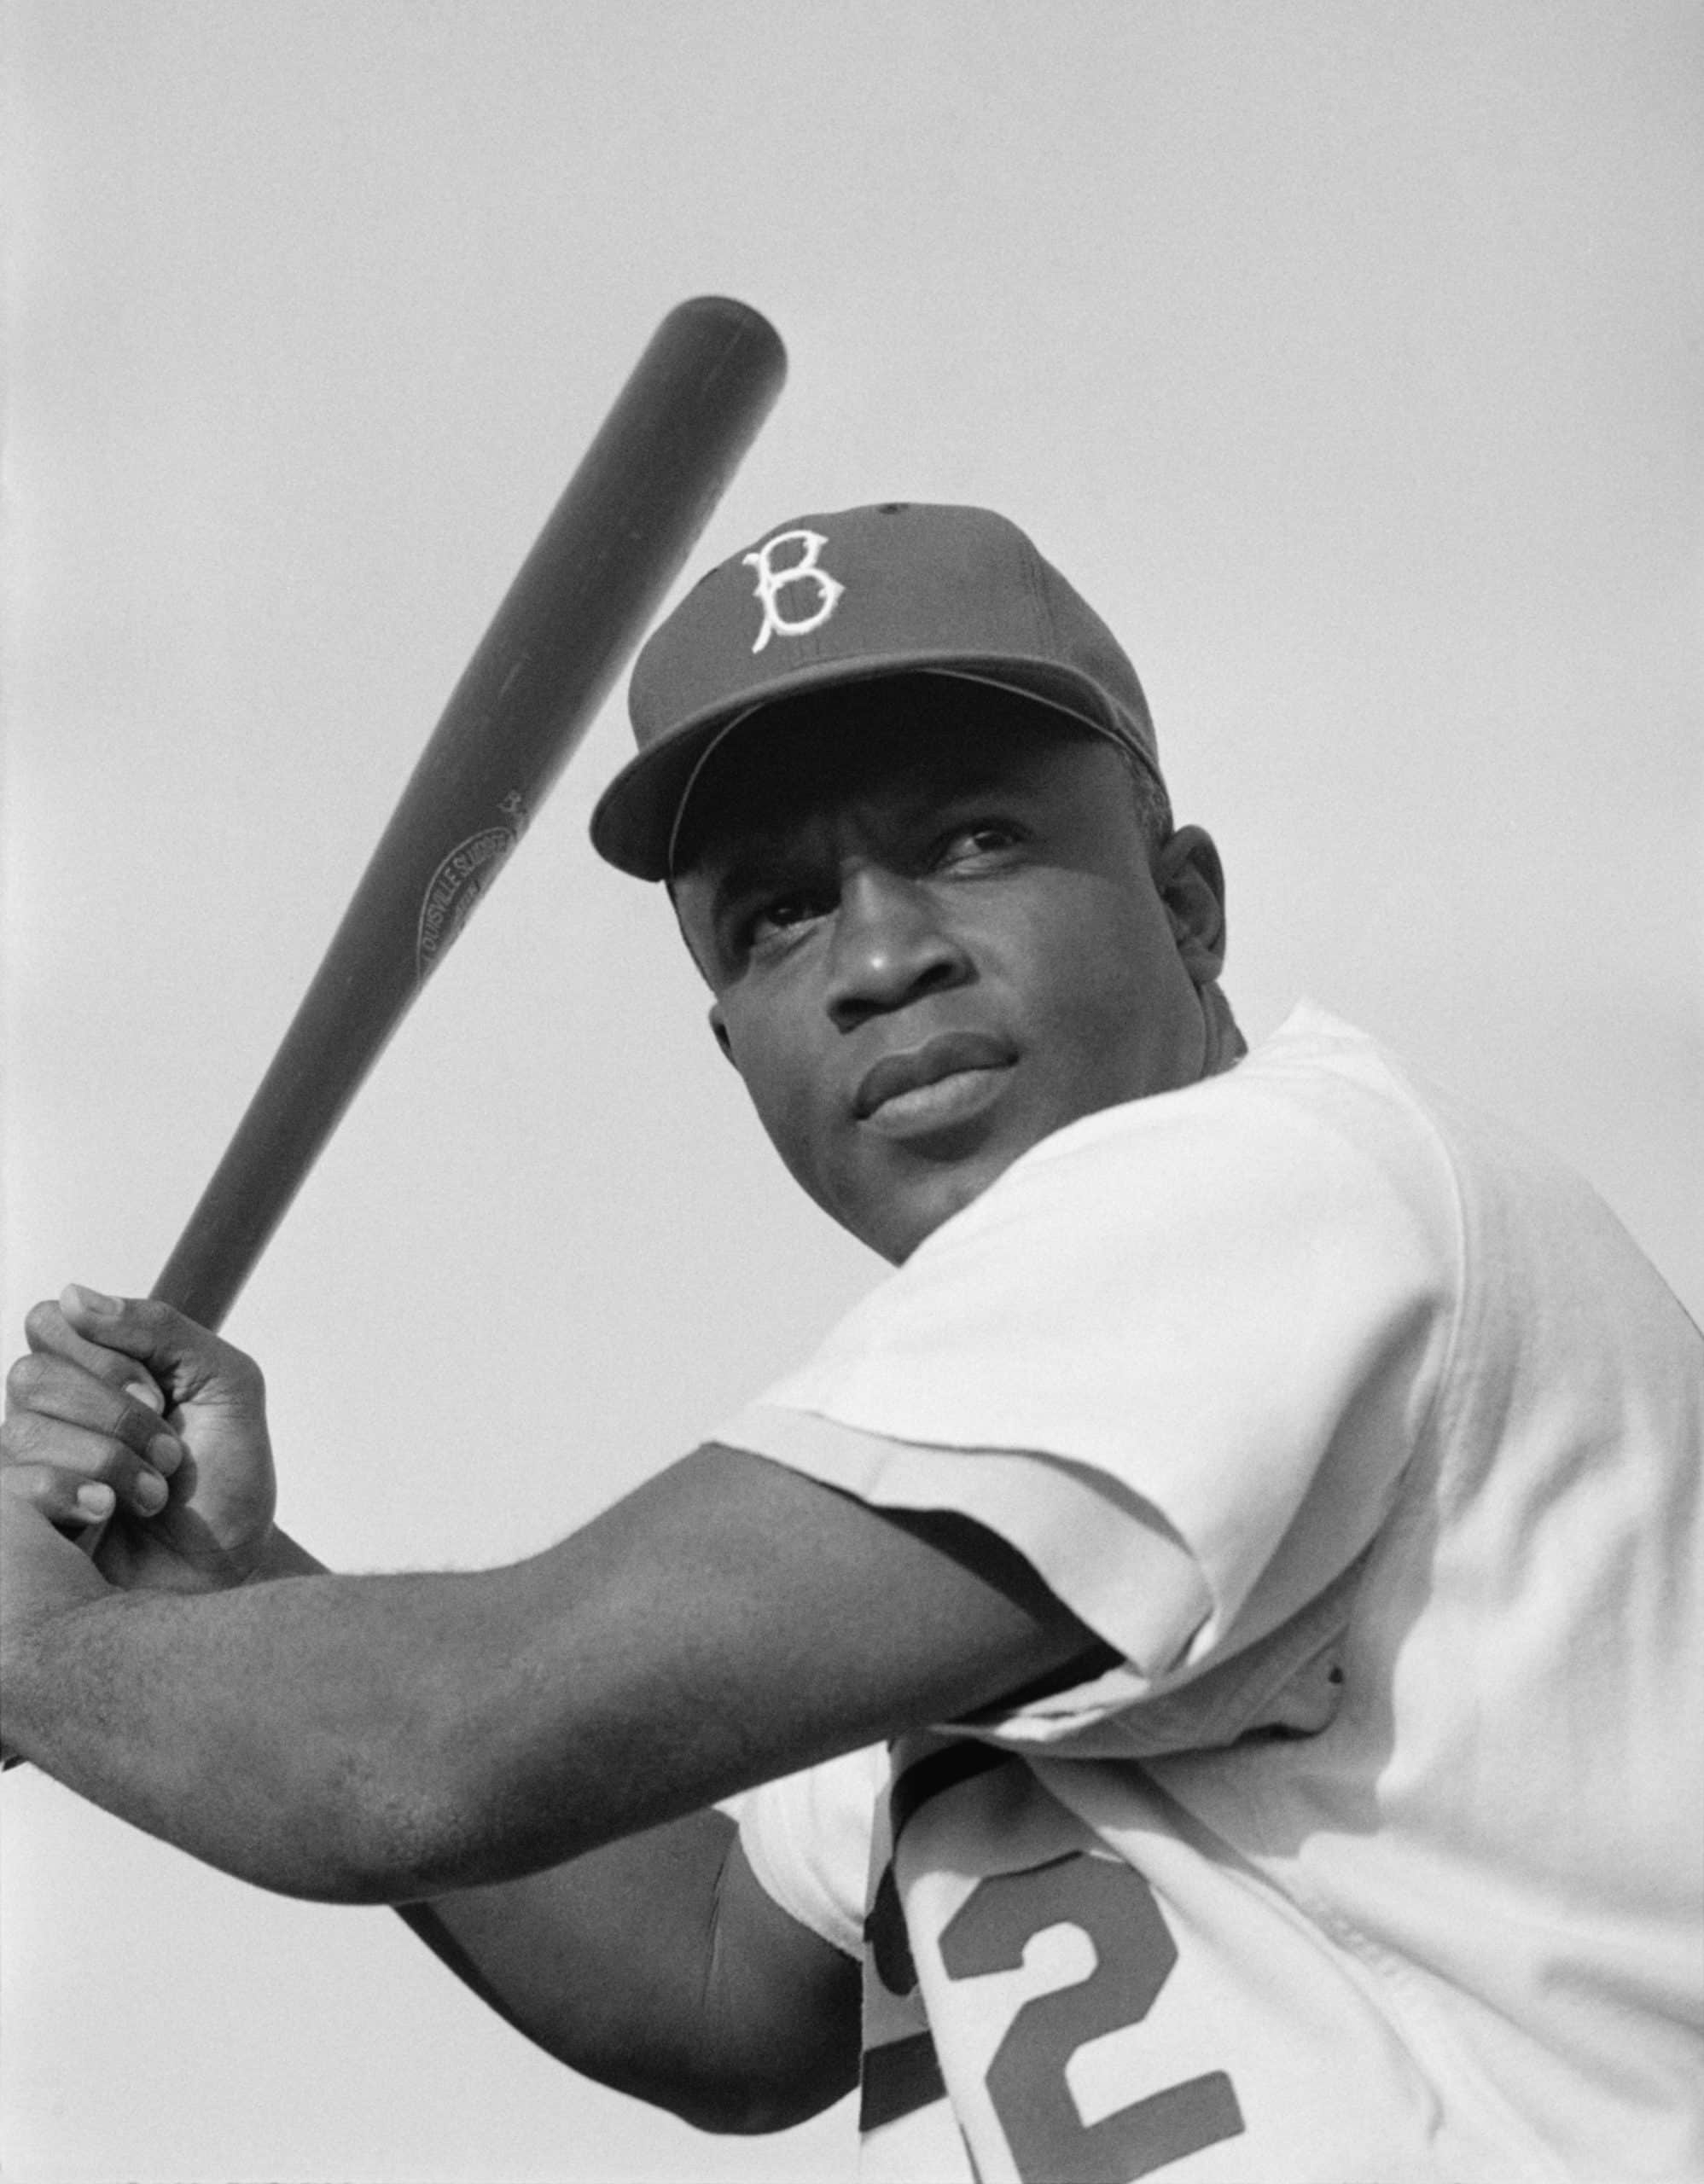 Jackie Robinson posing with a bat for a portrait